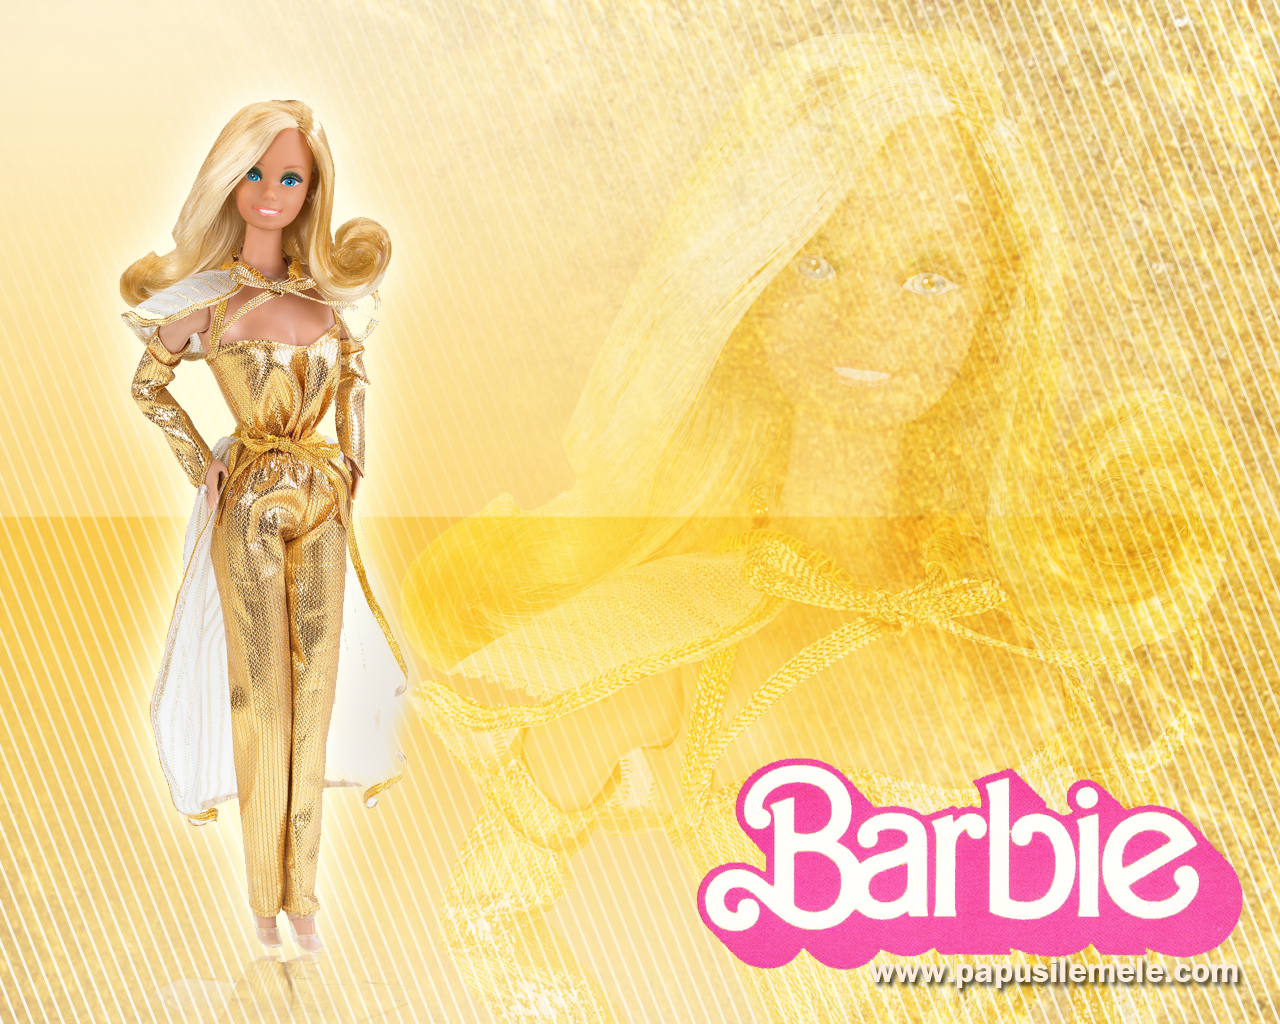 controvery over barbie essay Barbie's negative effects on young girls this study proves the fact that barbie has some kind of hold over includes the controversial information of the.